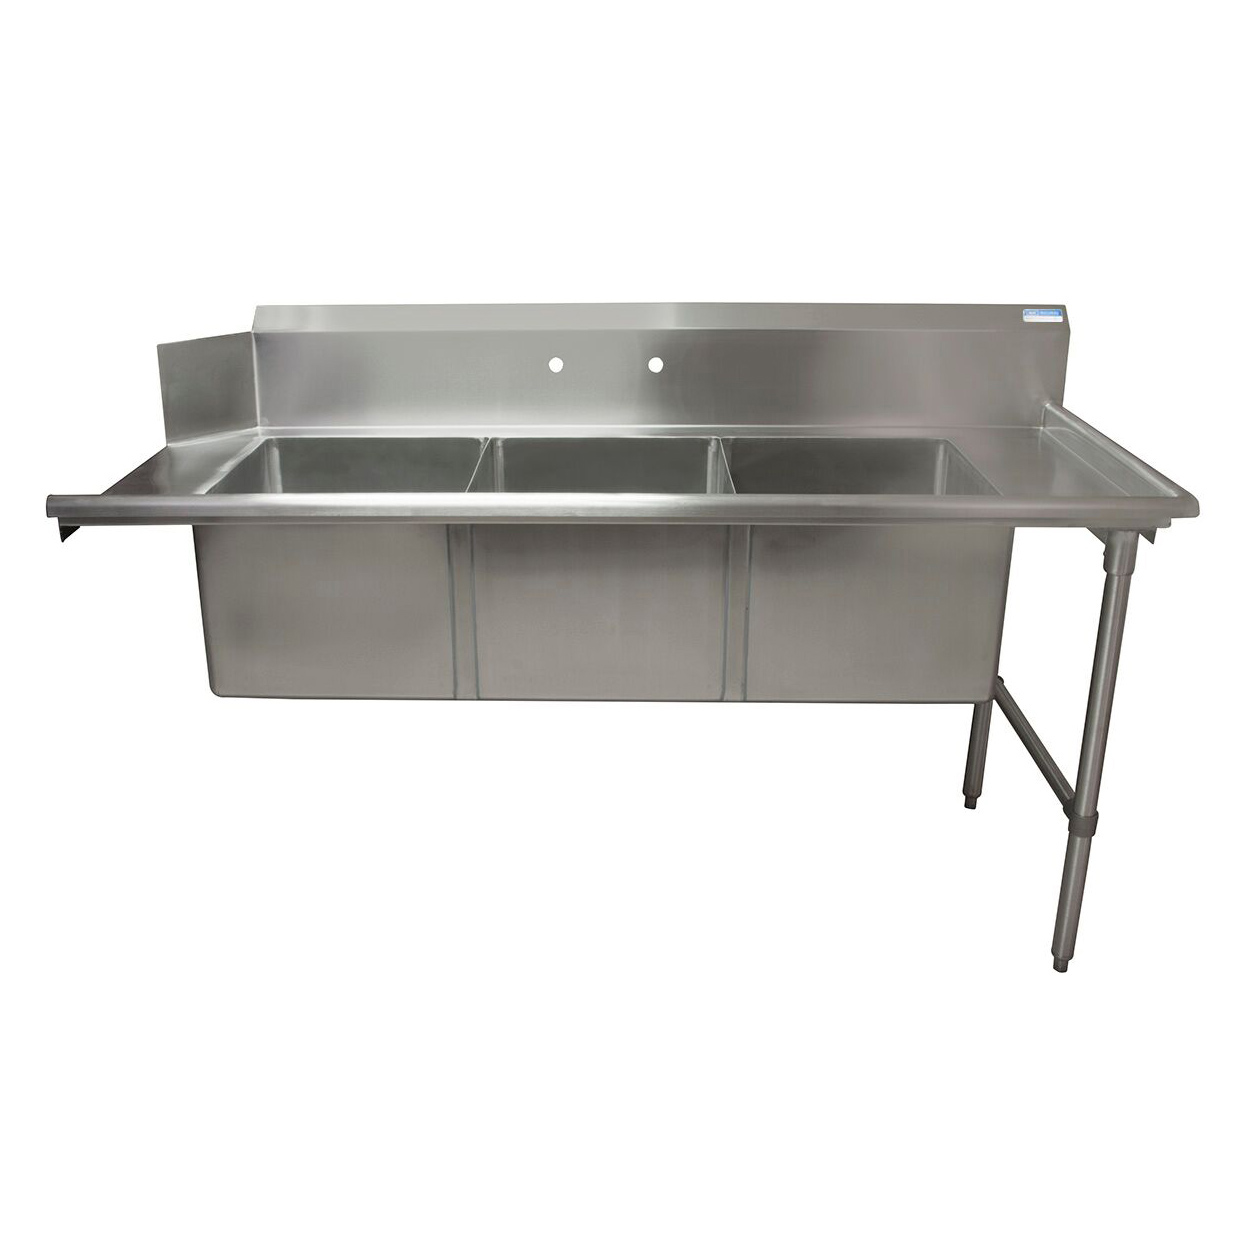 BK Resources BKSDT-3-1820-14-RSPG dishtable, with potsinks